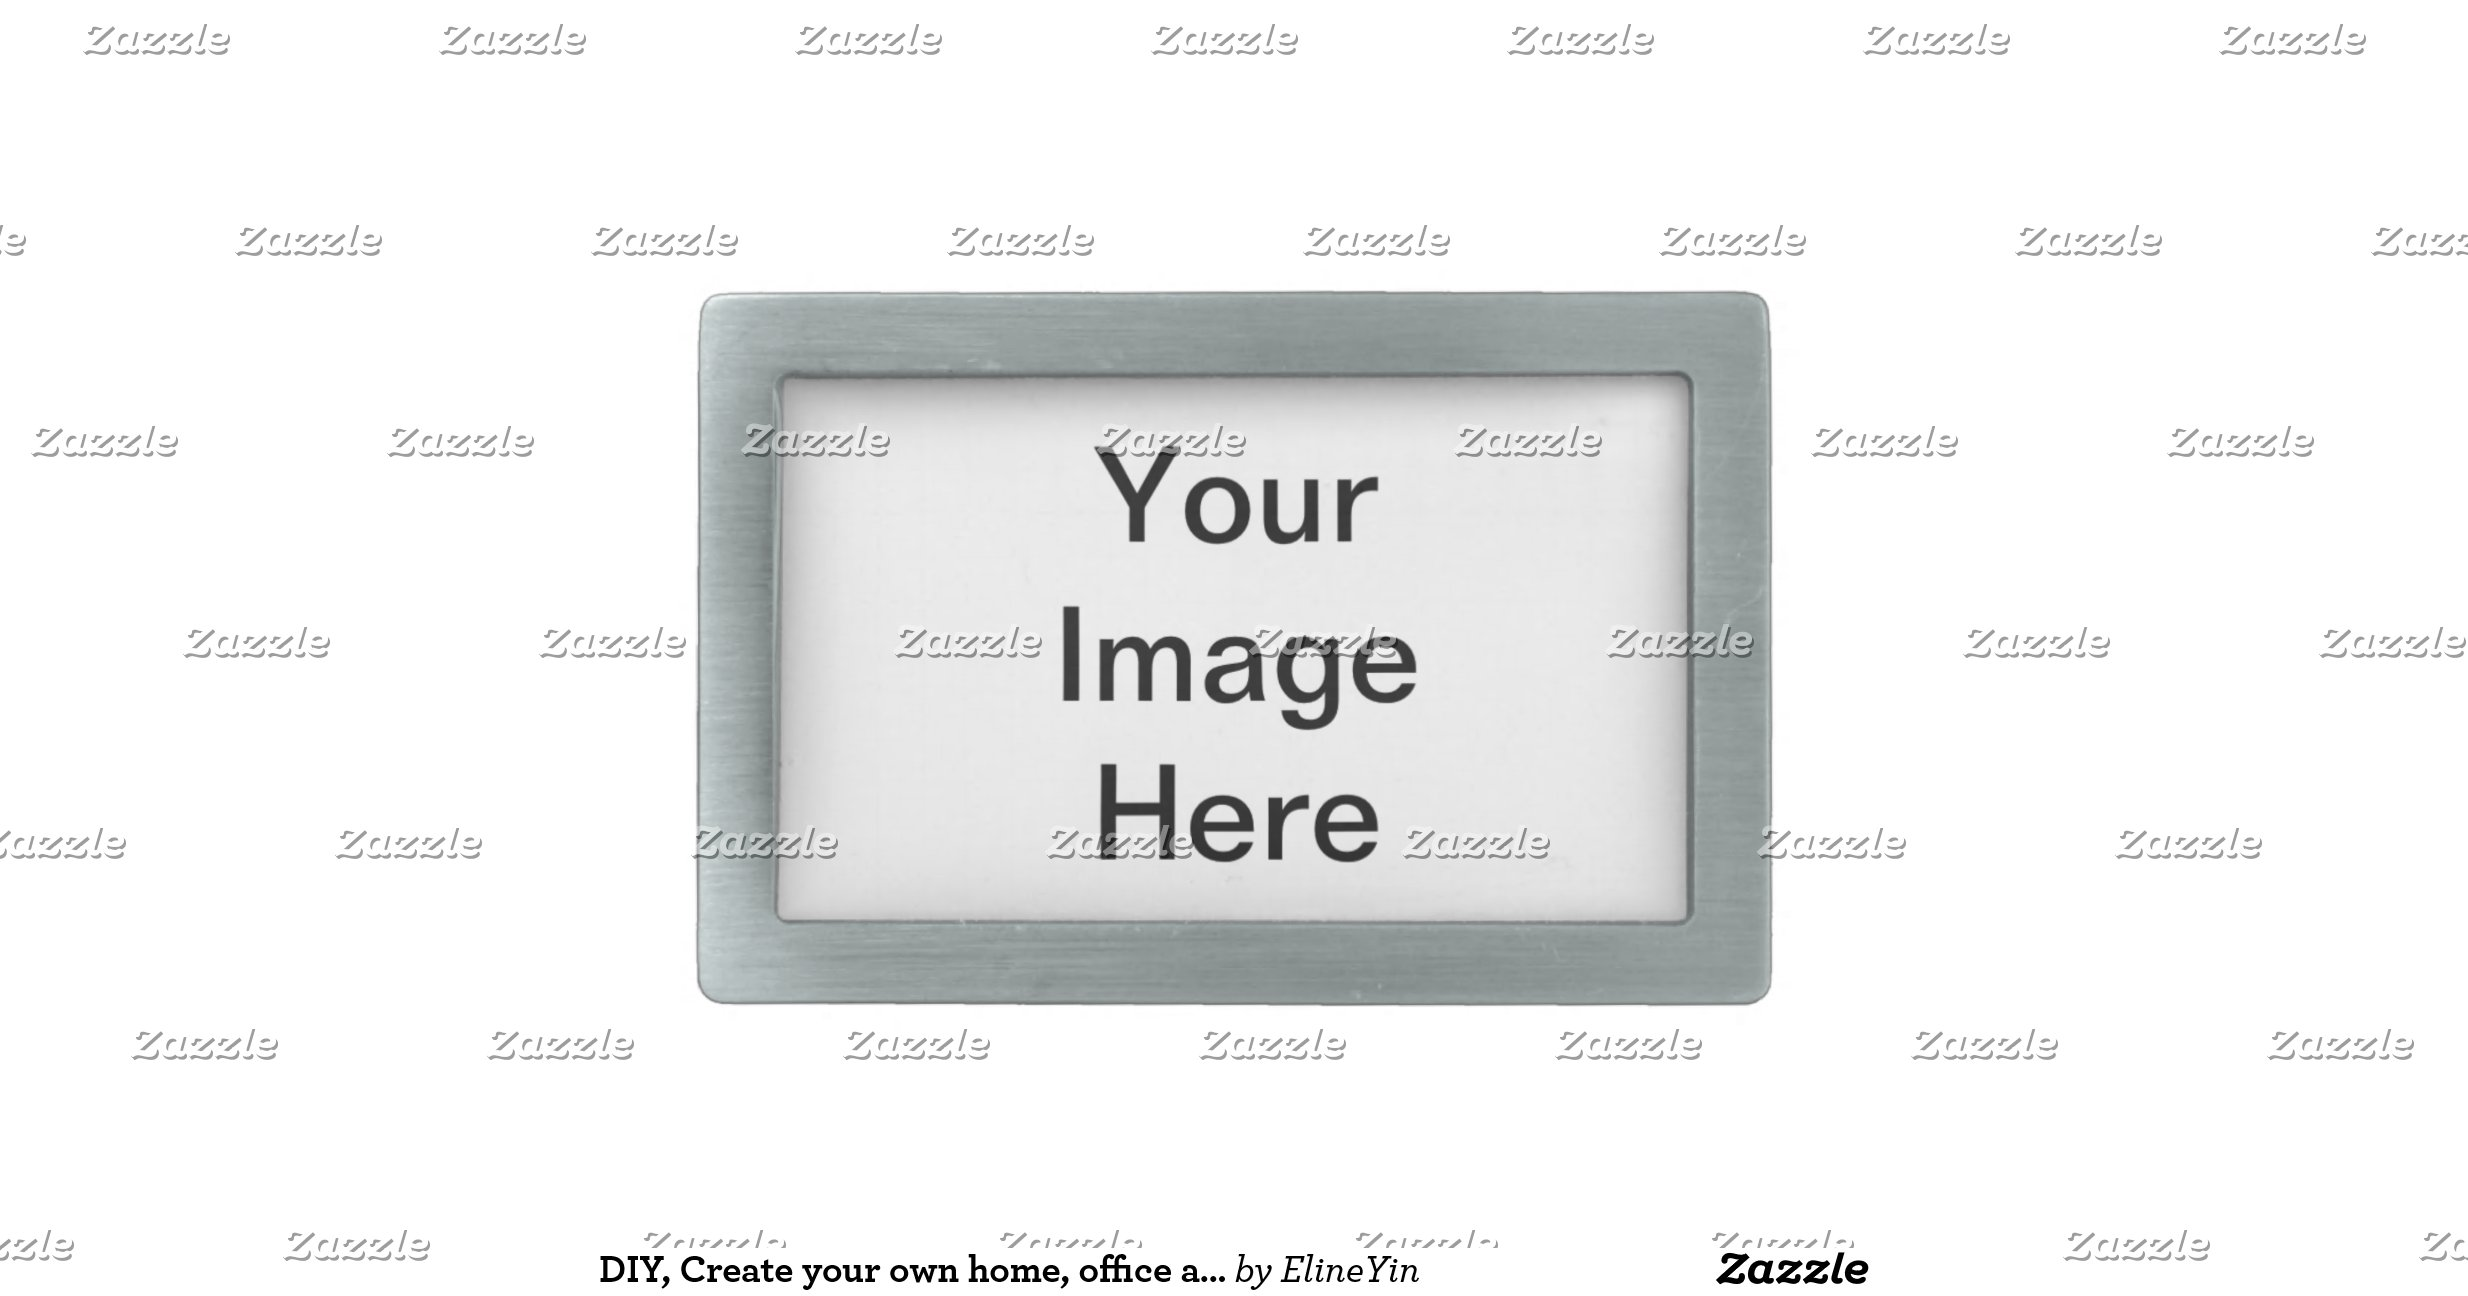 Diy create your own home office and business zazzle for Design your own property